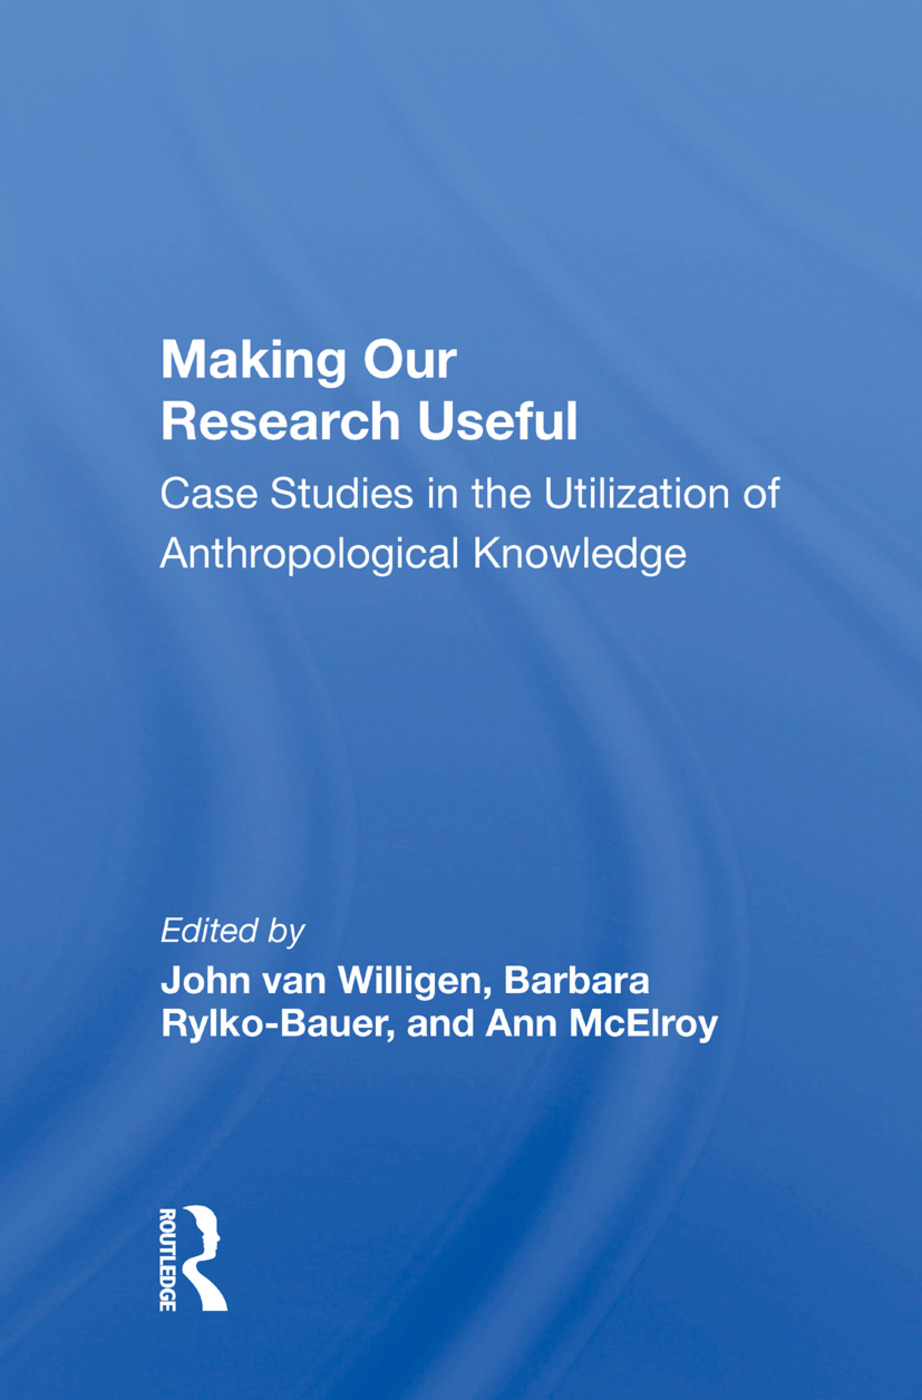 Making Our Research Useful: Case Studies in the Utilization of Anthropological Knowledge book cover